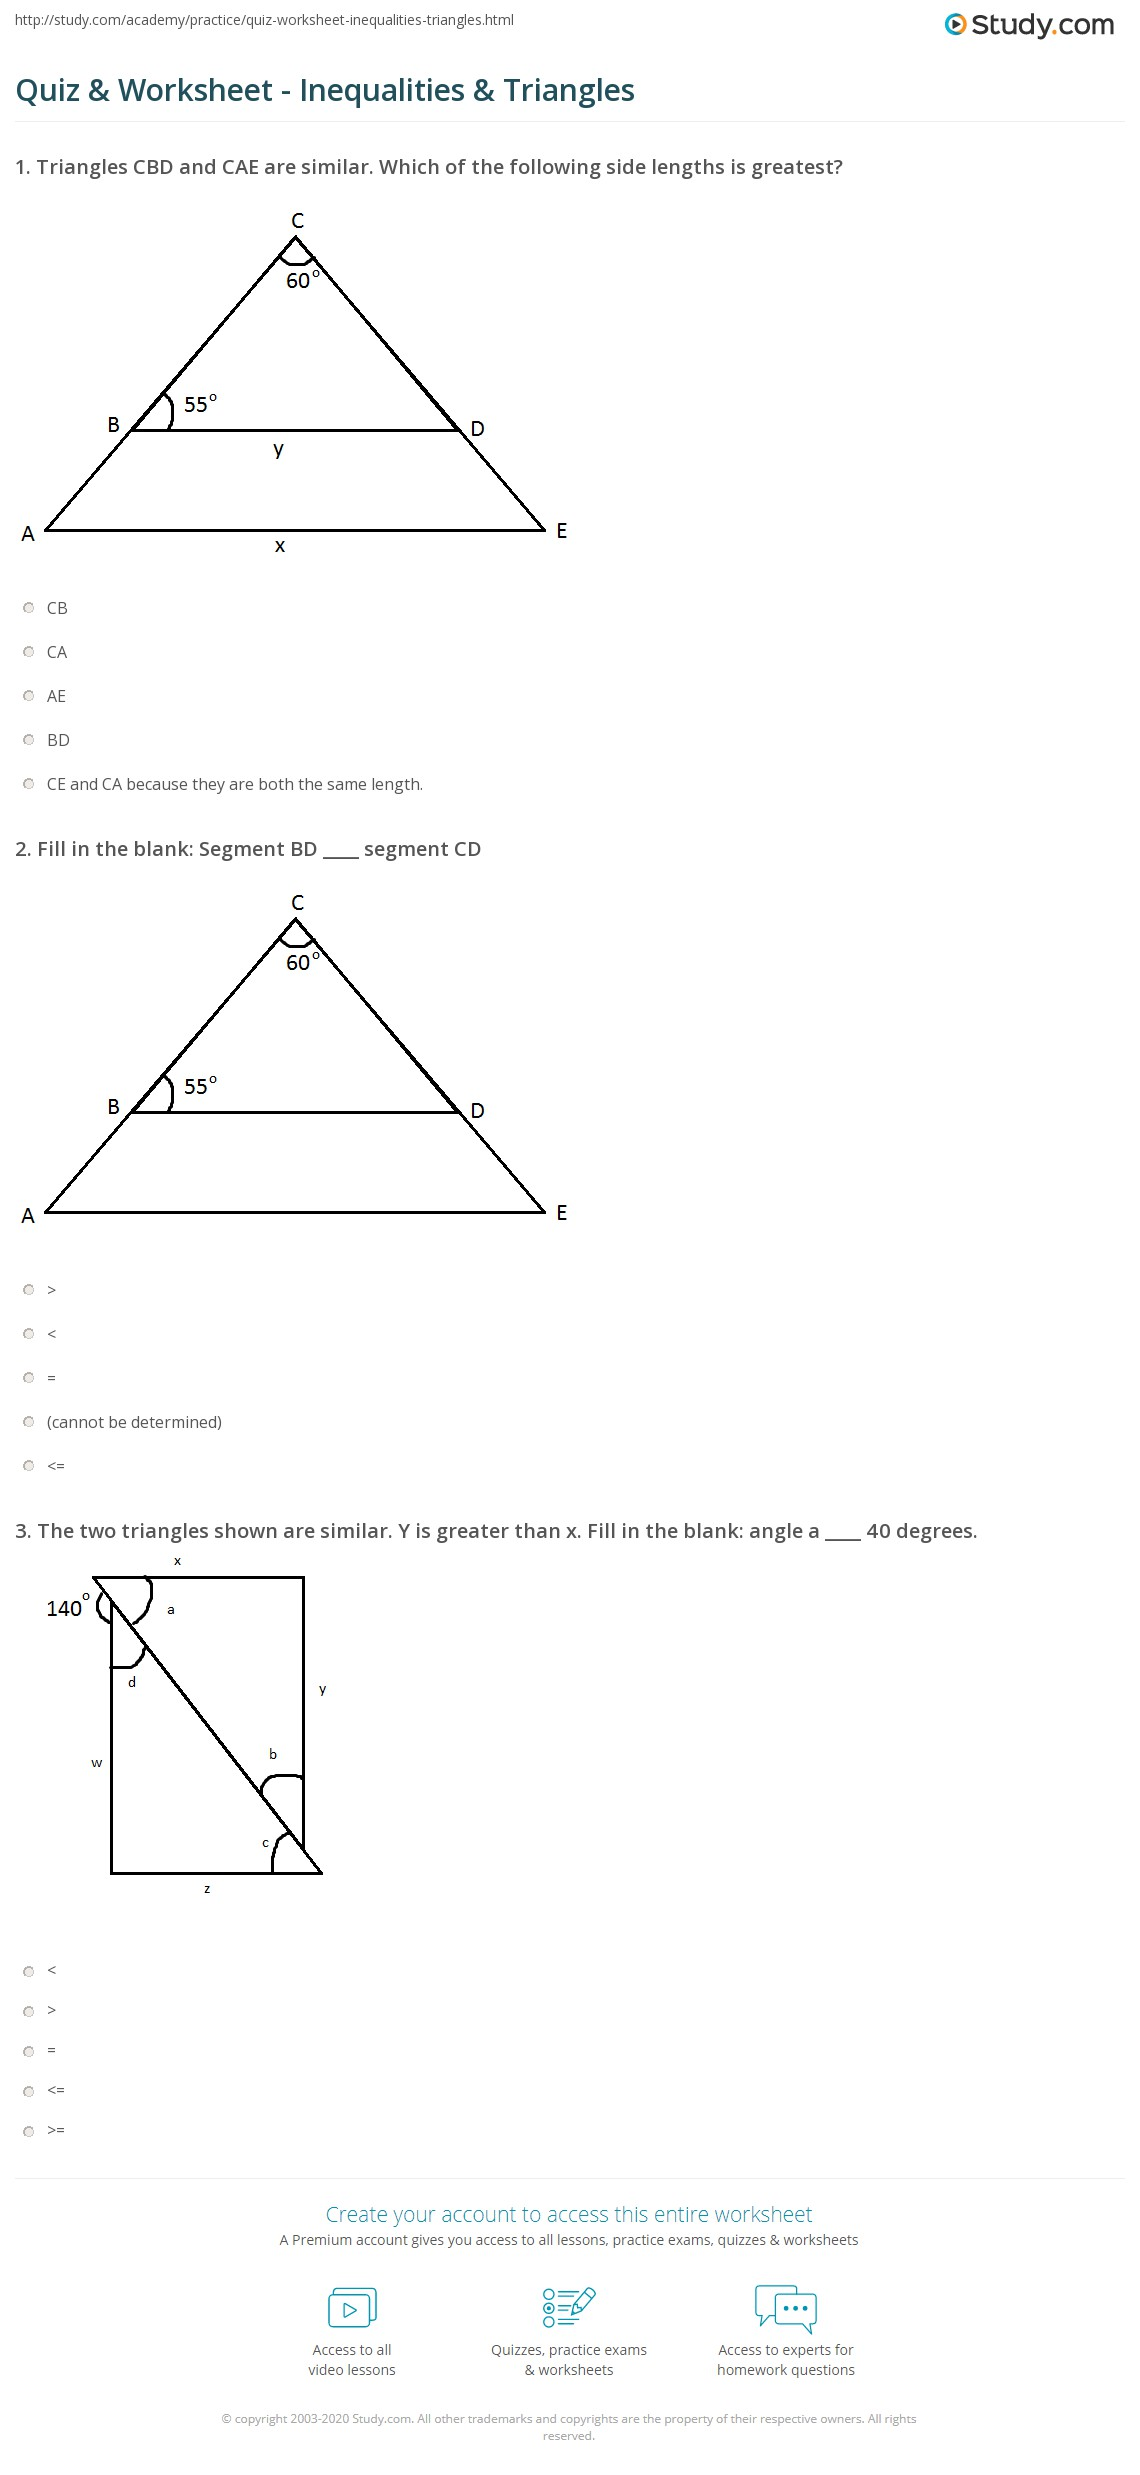 Bestseller: 5 5 Inequalities In One Triangle Worksheet Answers